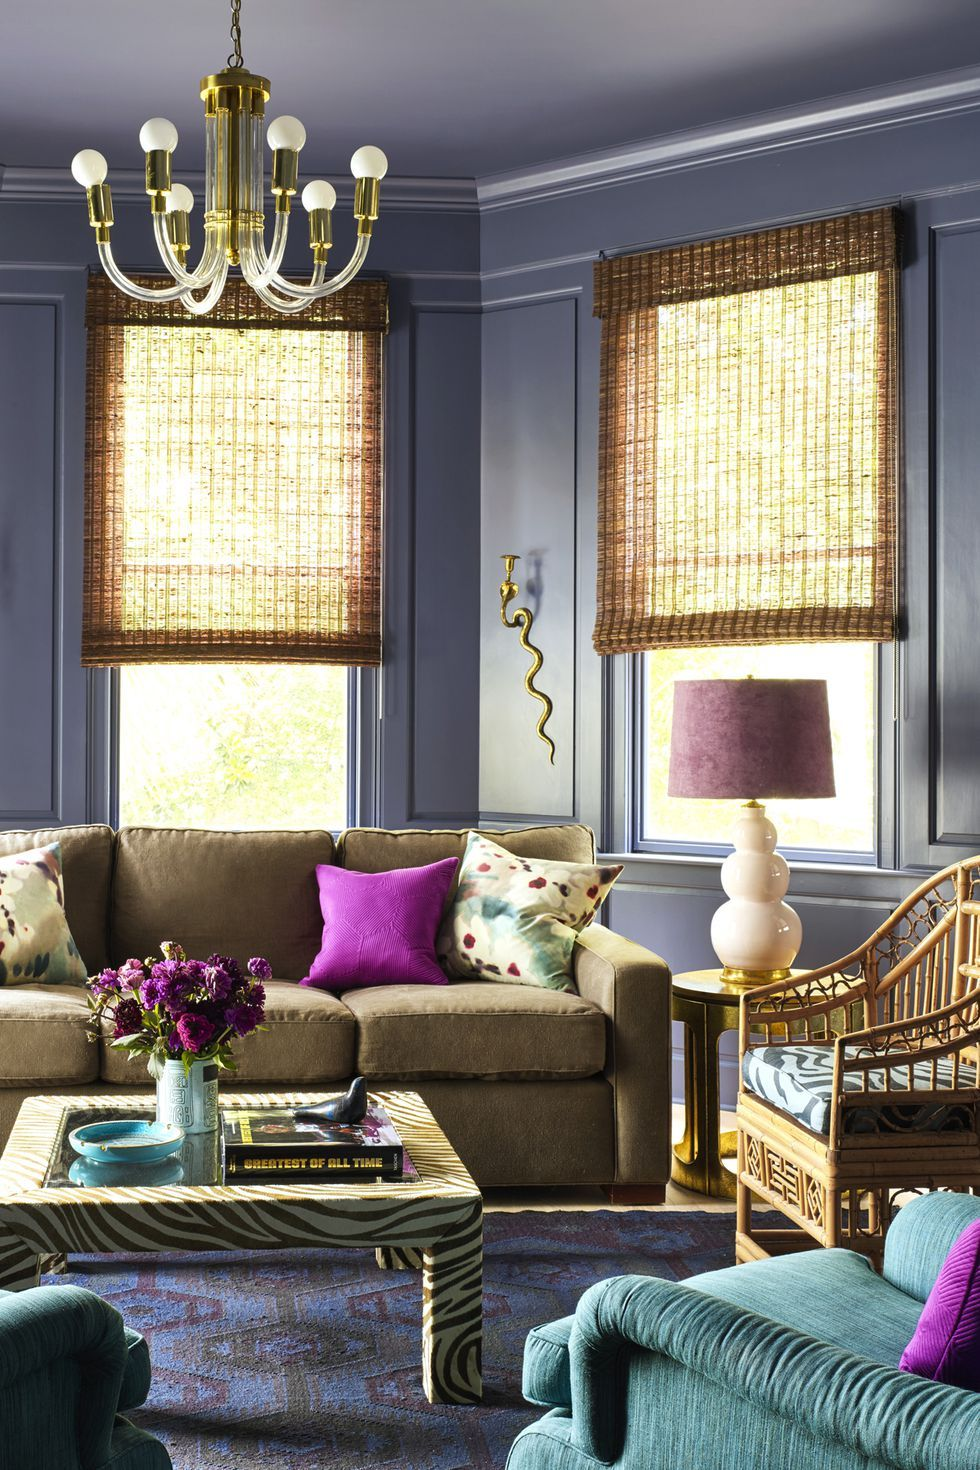 Everything You Need To Know About Interior Design 52 Best Interior Decorating Secrets - Decorating Tips and Tricks from the  Pros